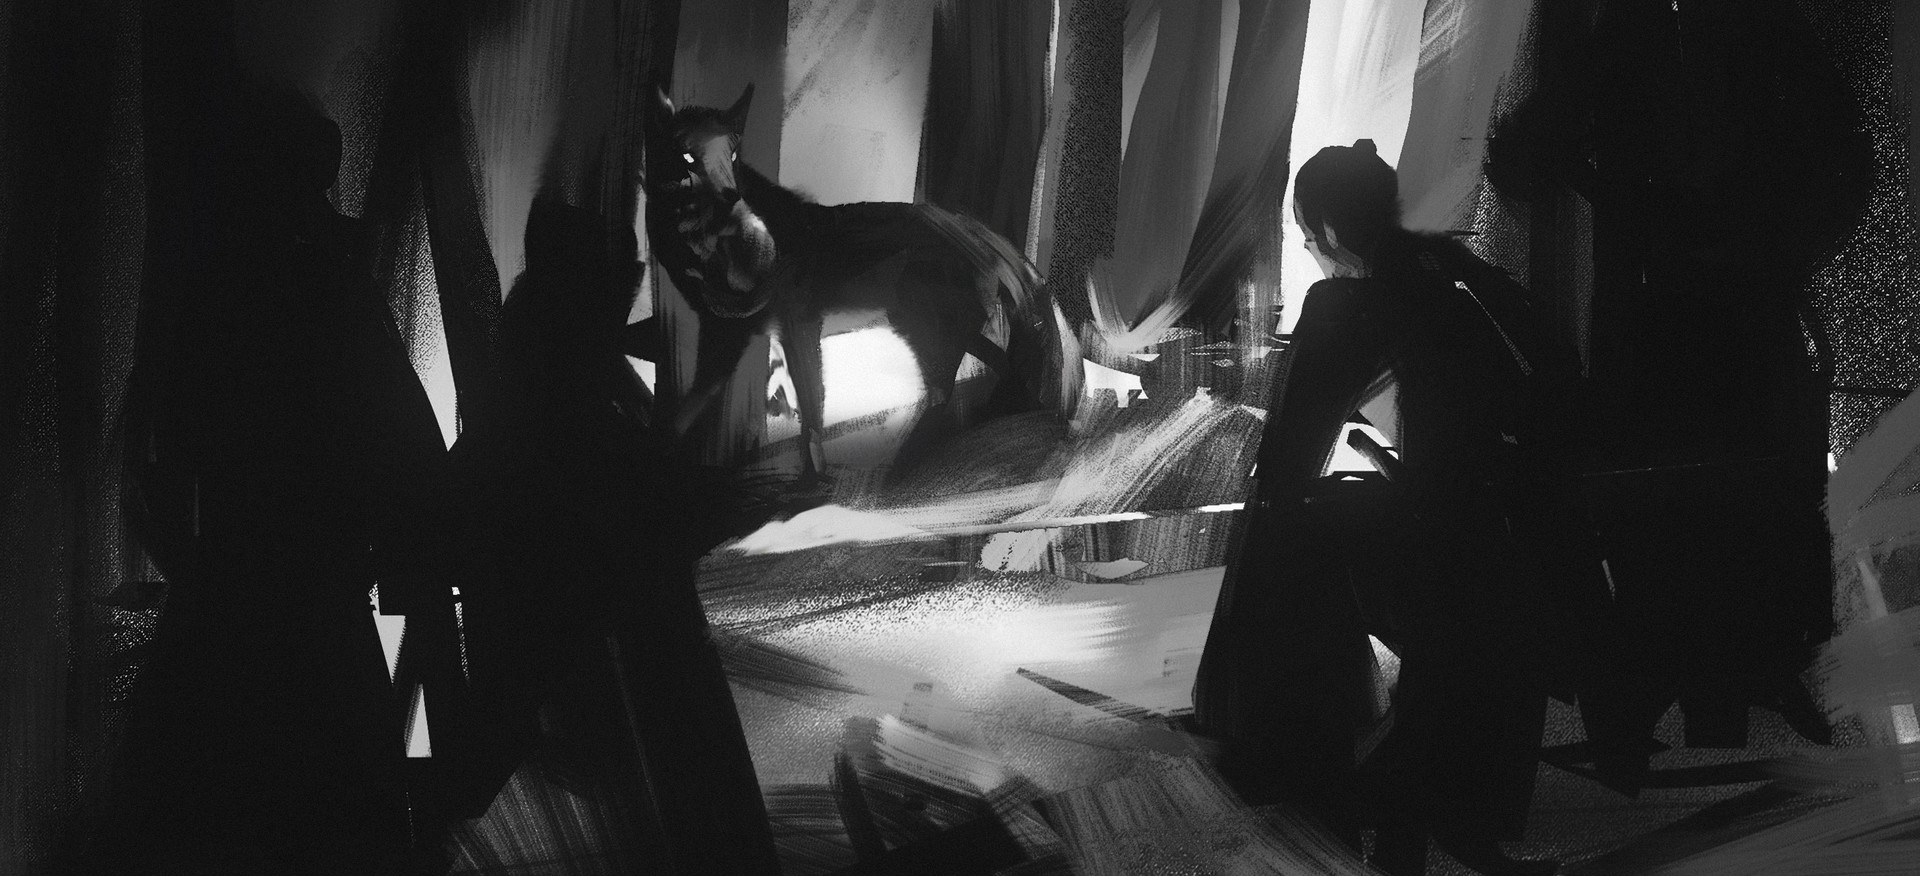 ArtStation - Pengyu Zhang's submission on Feudal Japan: The